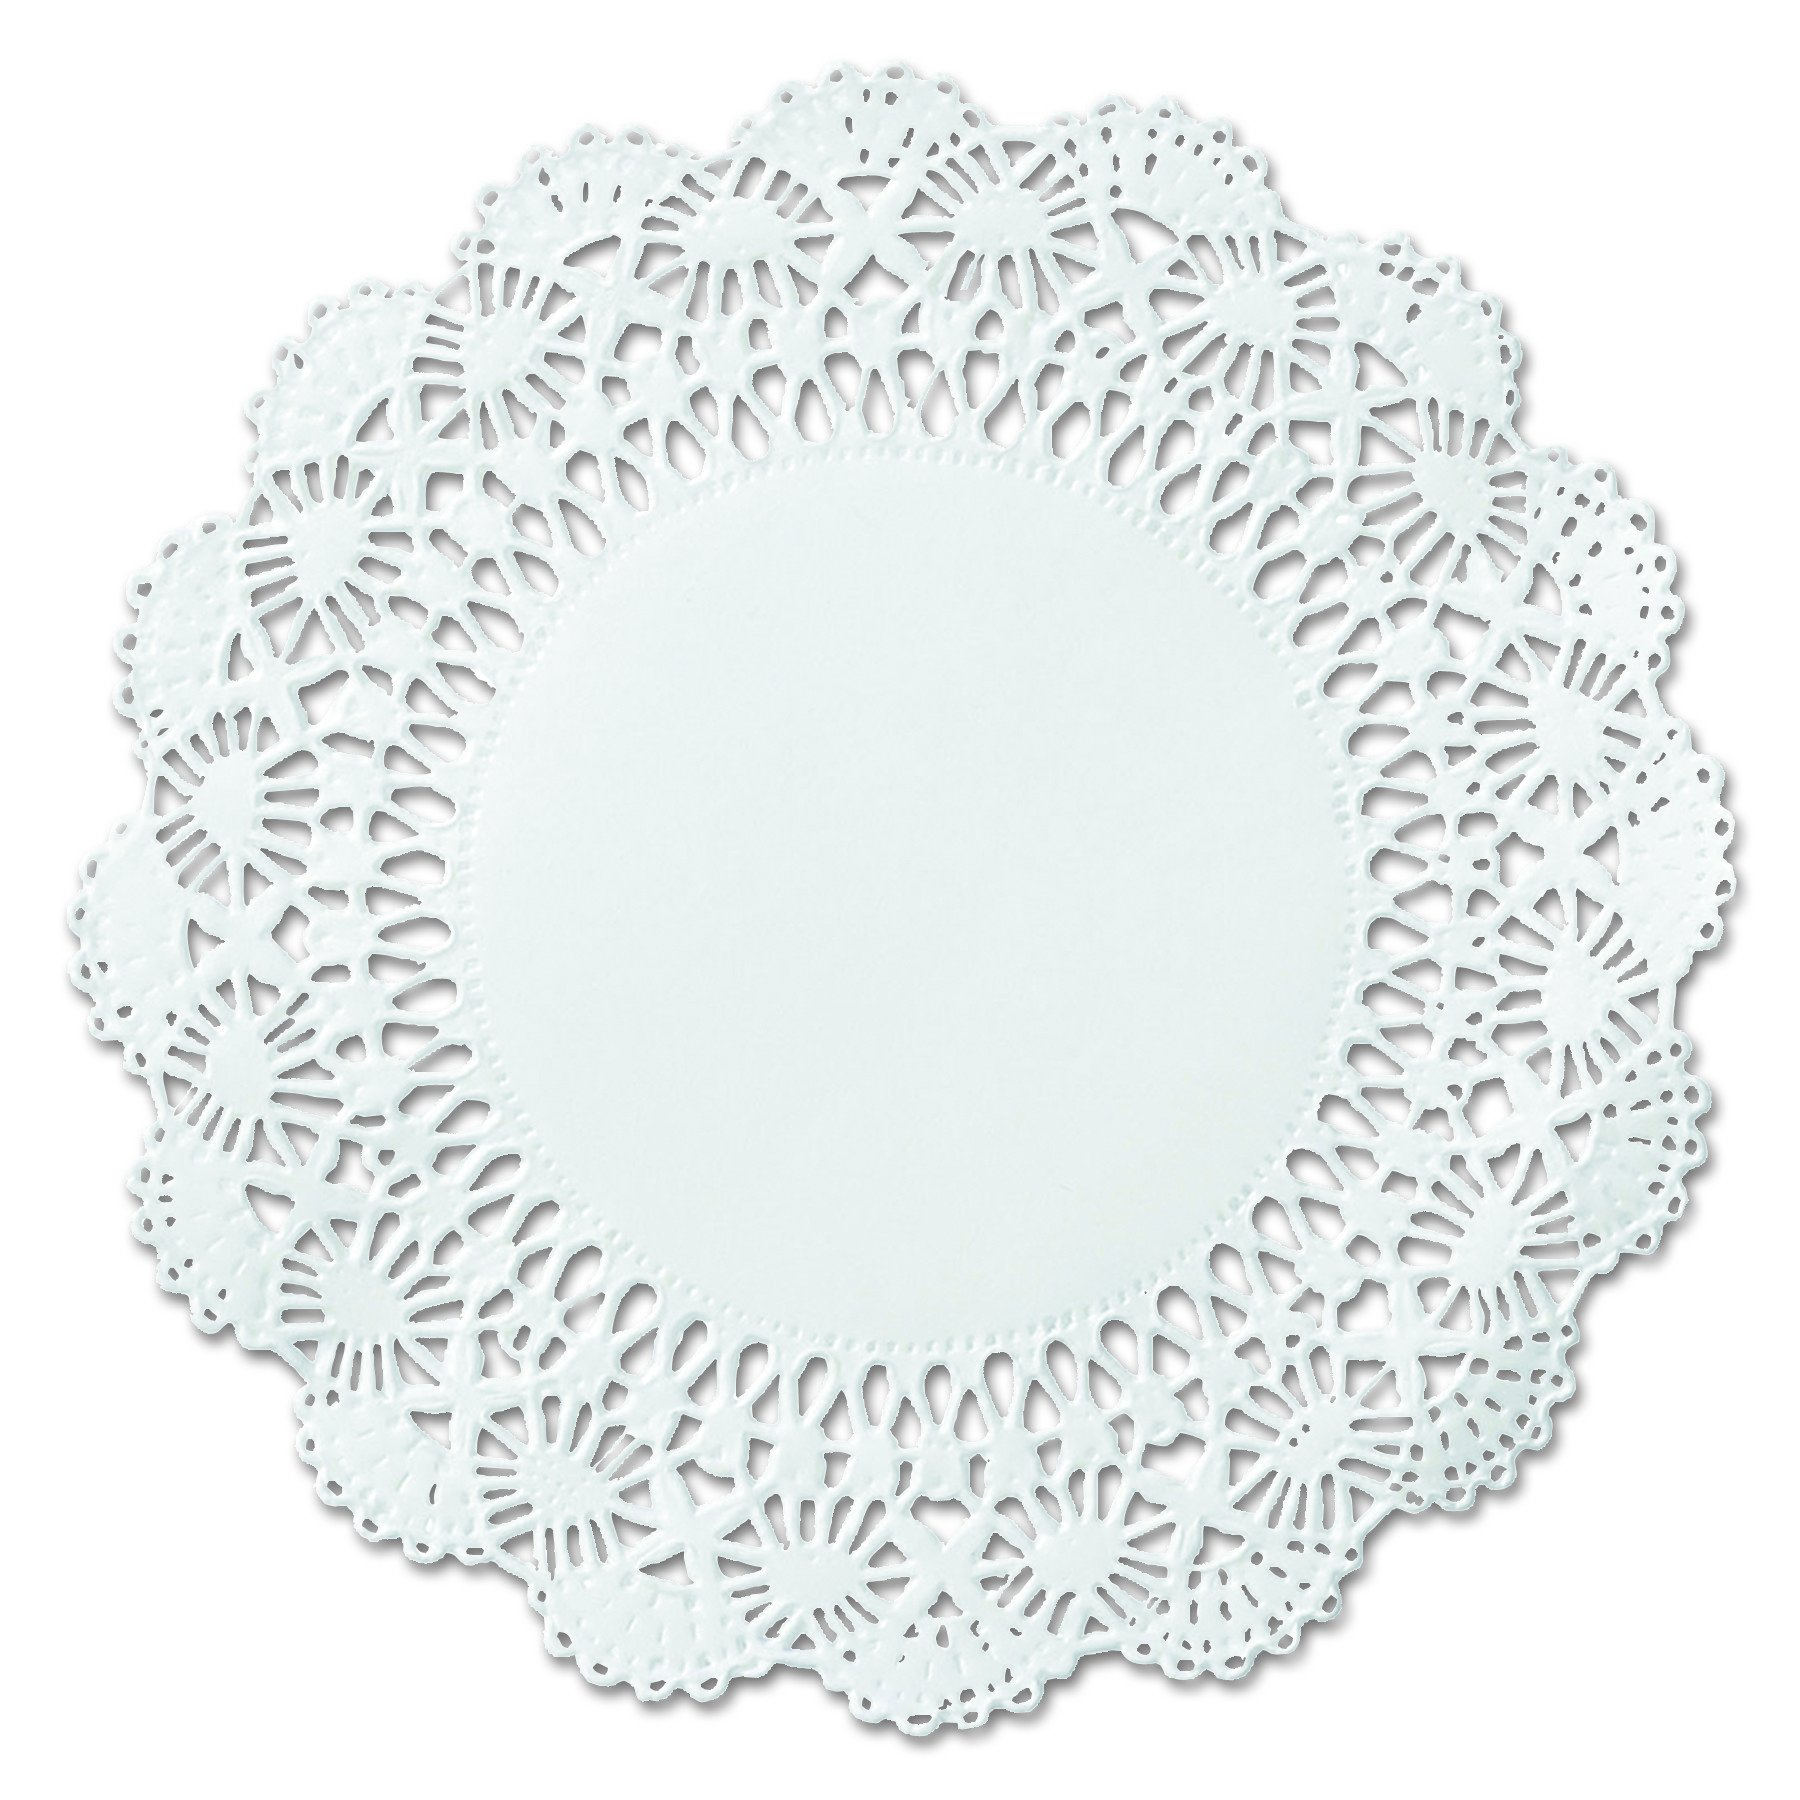 Hoffmaster 500239 12'' White Round Cambridge Lace Doily (Case of 1,000) by Hoffmaster